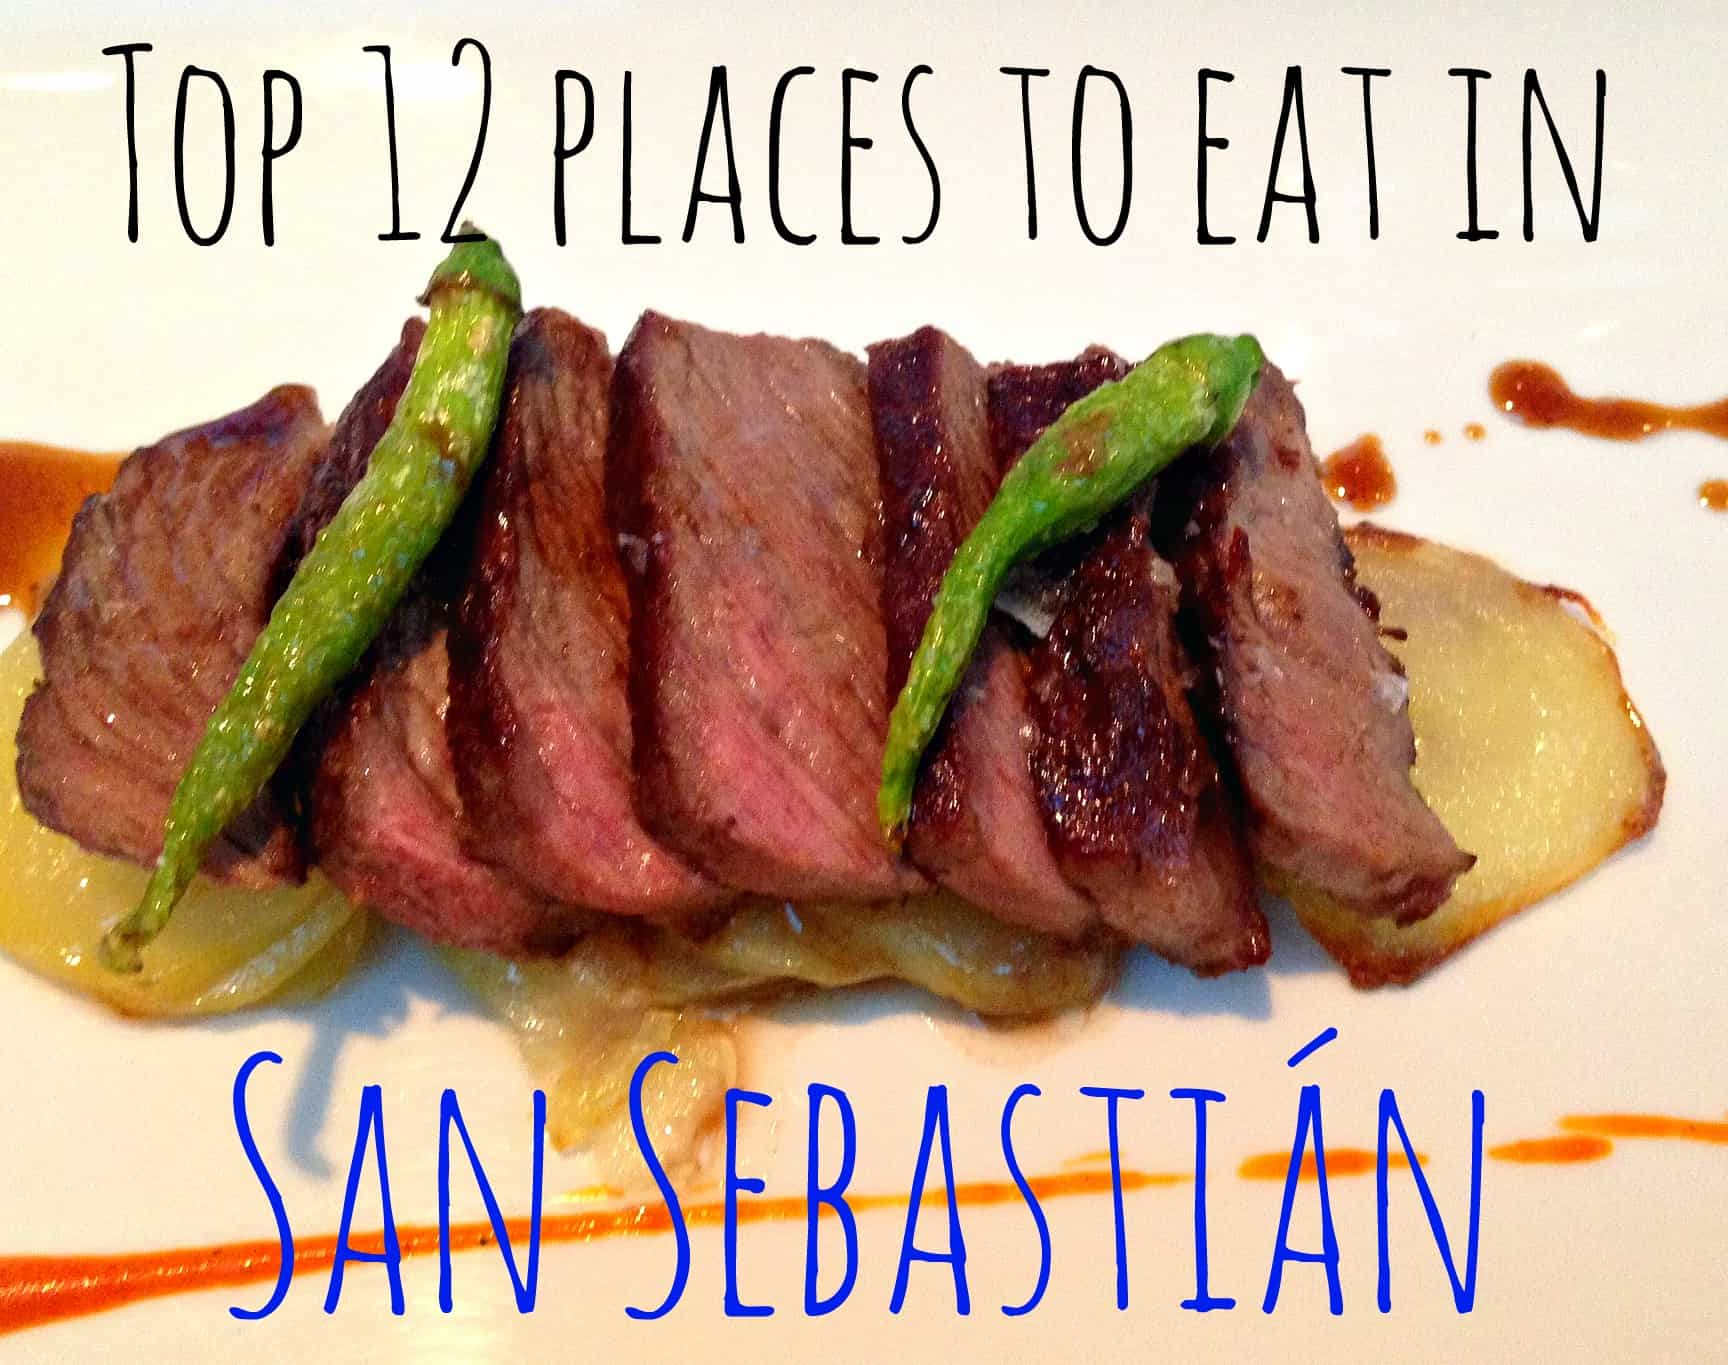 Best Places To Eat in San Sebastian | My Travel Monkey